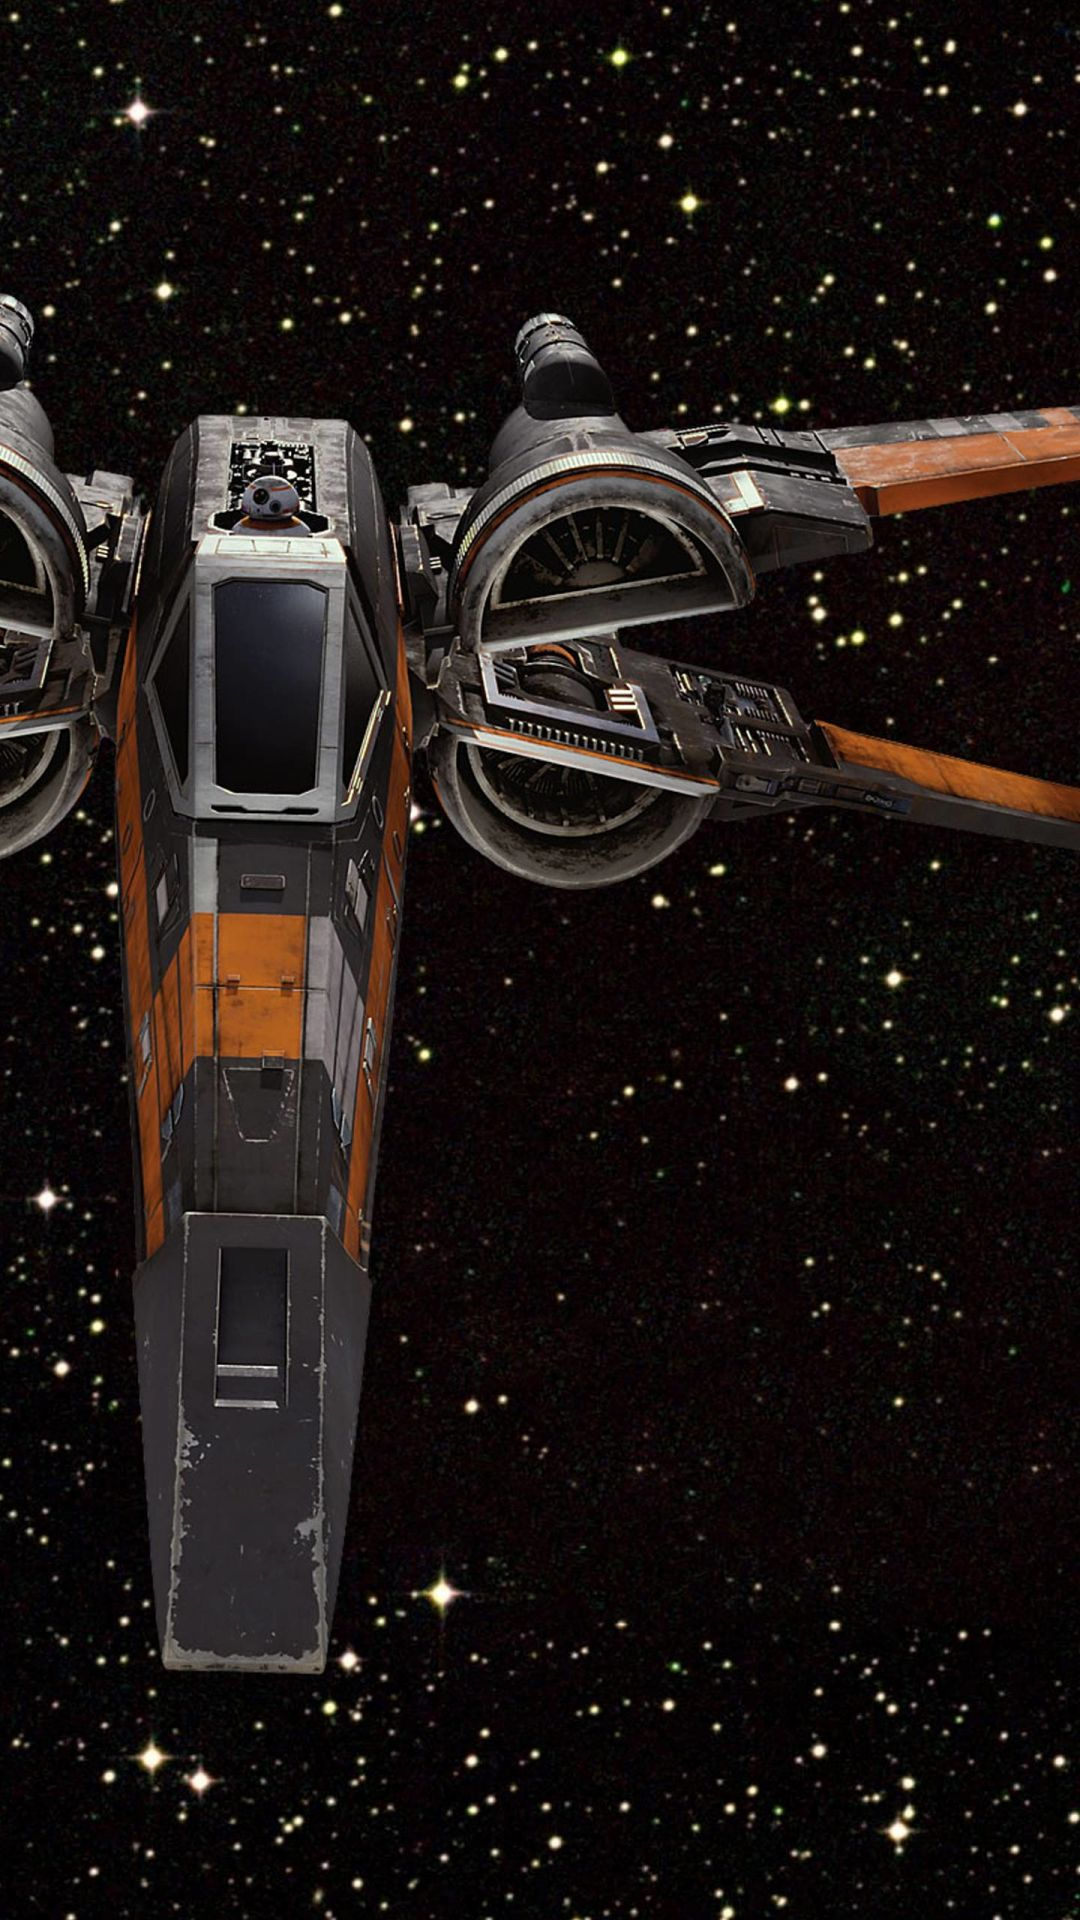 175 Star Wars Iphone 6 Android Iphone Desktop Hd Backgrounds Wallpapers 1080p 4k 1440x2560 2020